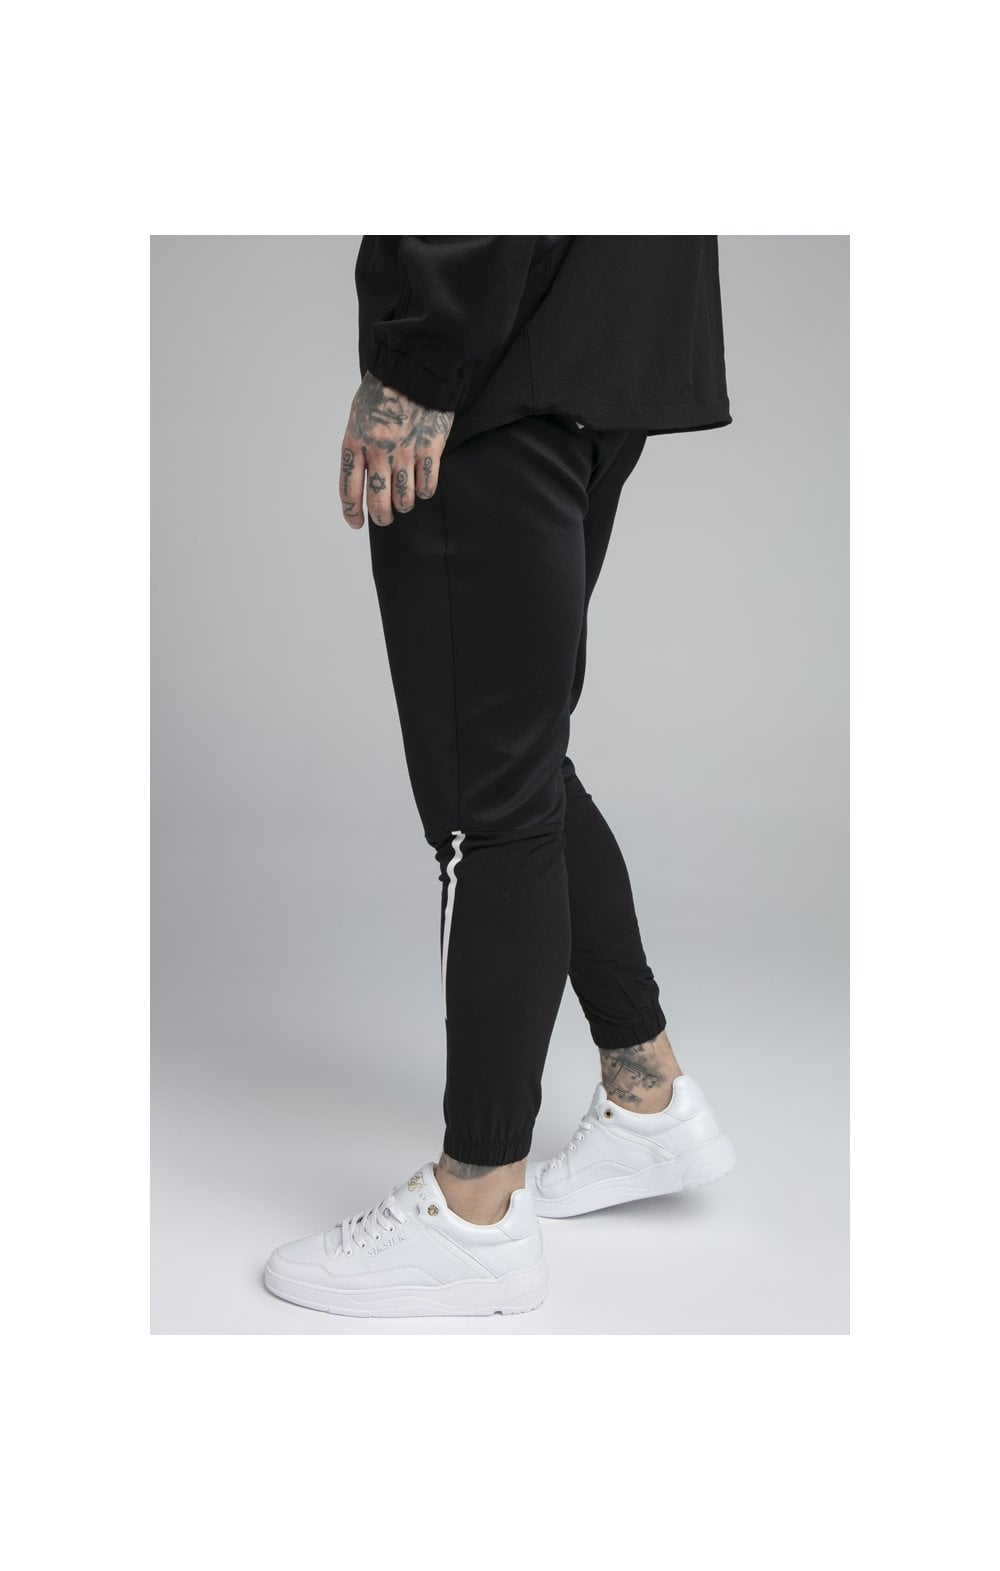 SikSilk Tranquil Training Pants - Black & Grey (2)